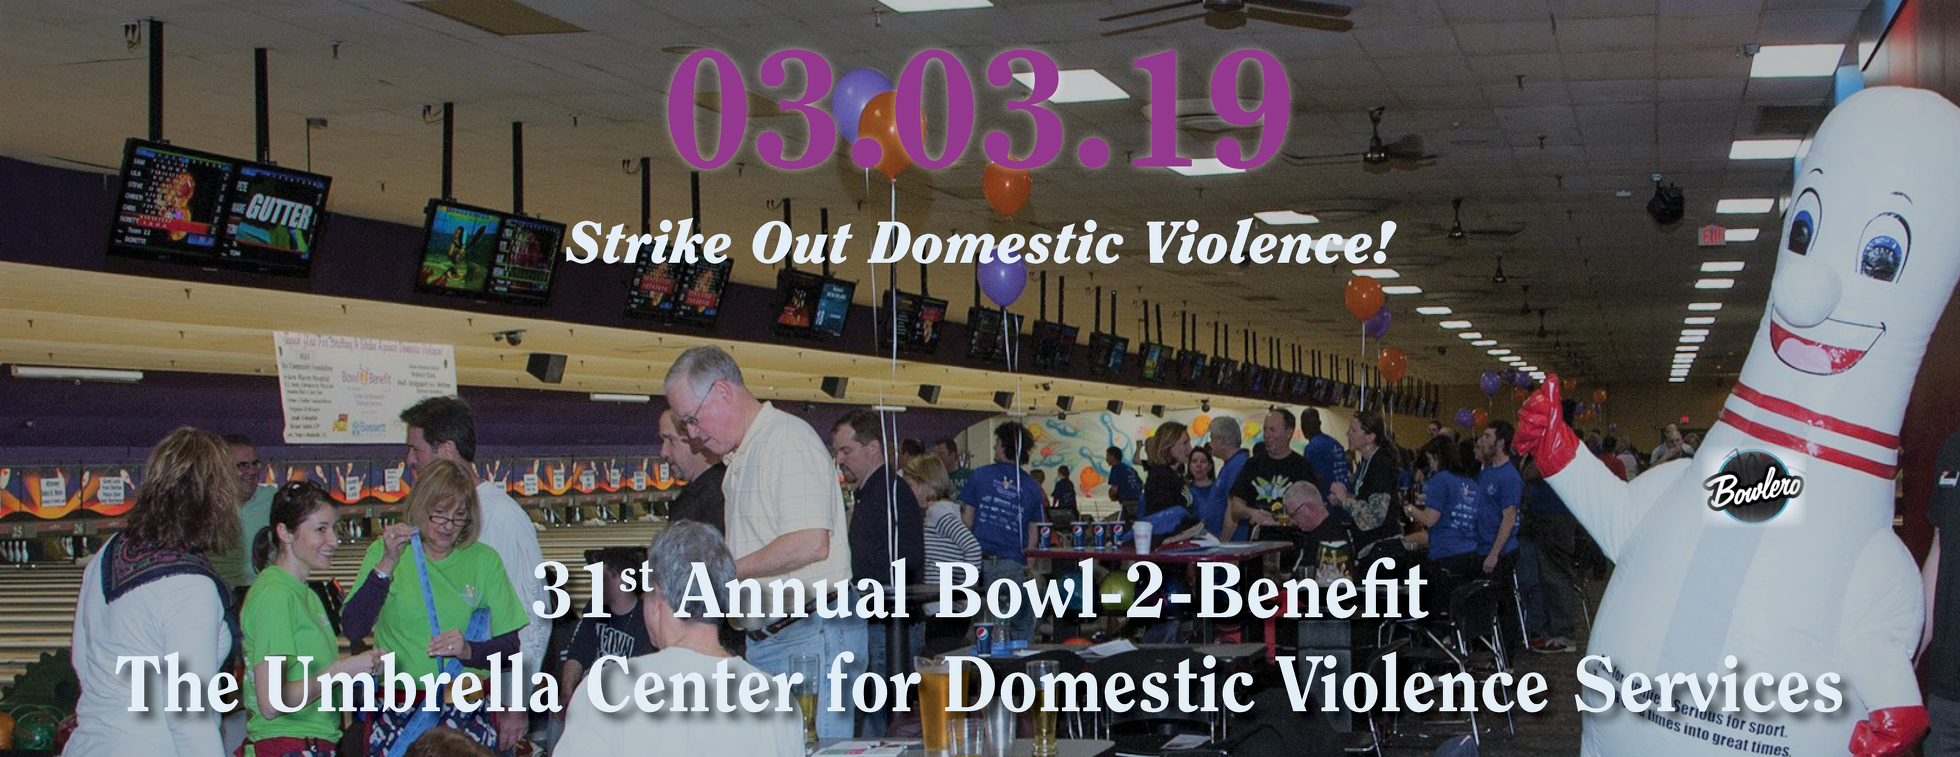 BHcare's Bowl-2-Benefit The Umbrella Center for Domestic Violence Services